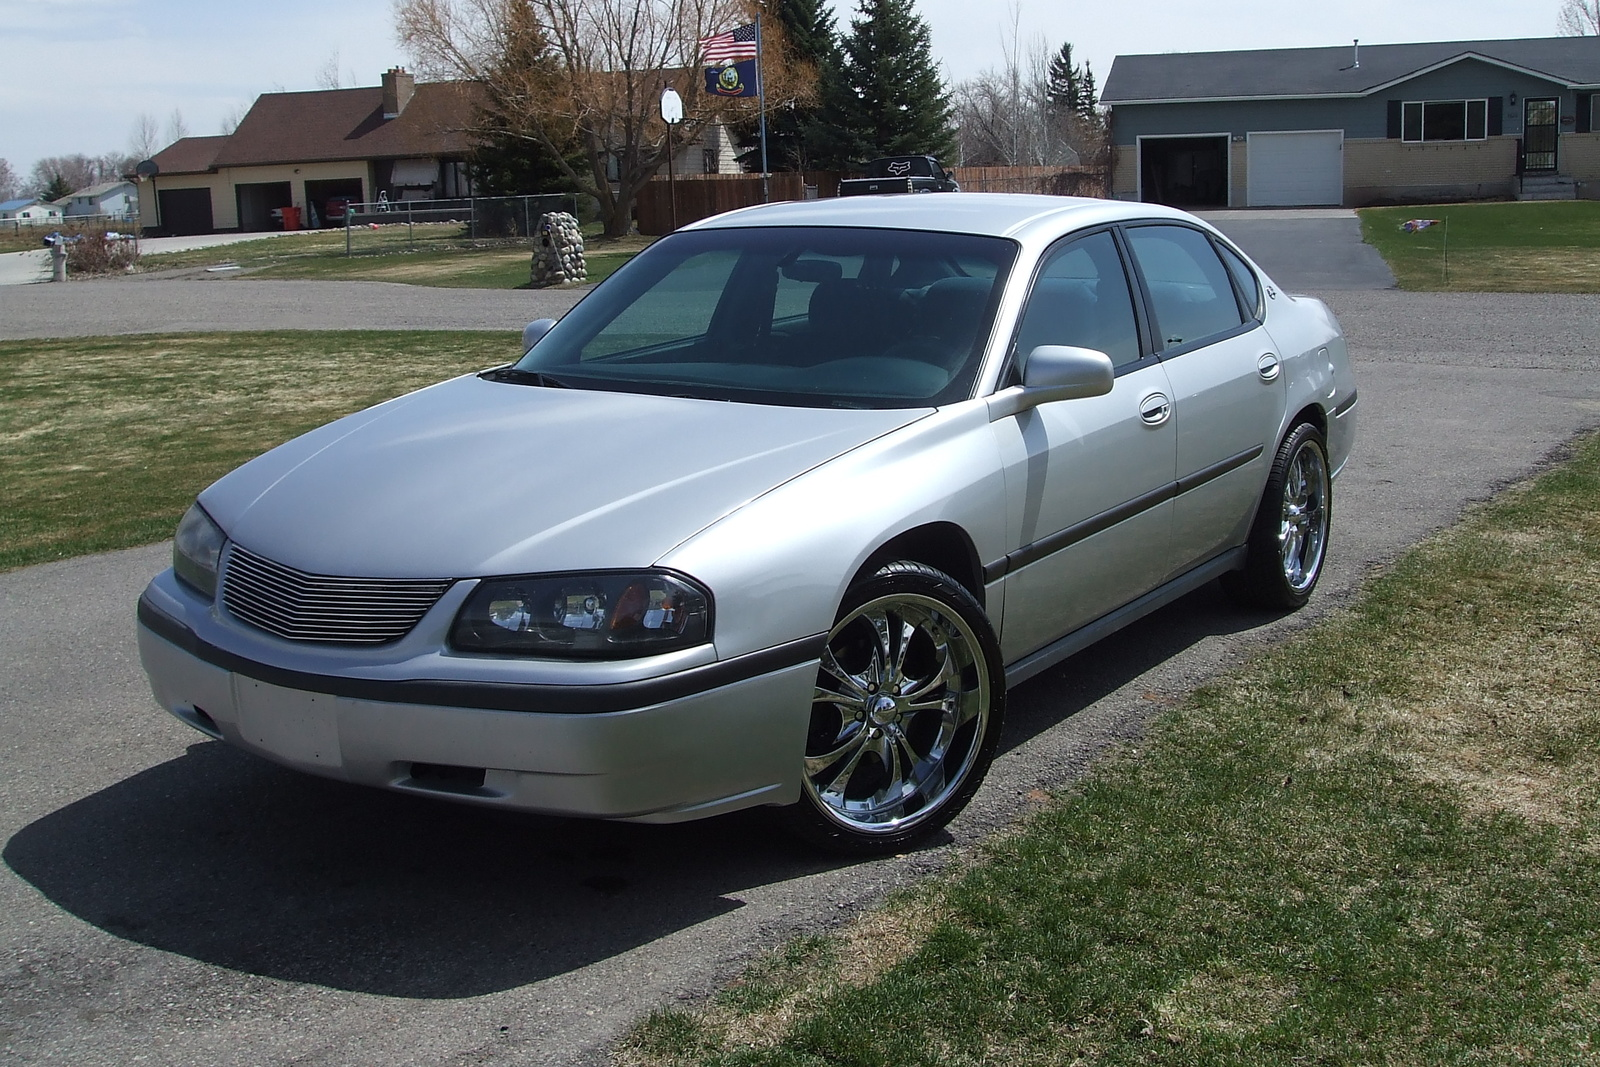 2003 chevrolet impala exterior pictures cargurus. Cars Review. Best American Auto & Cars Review